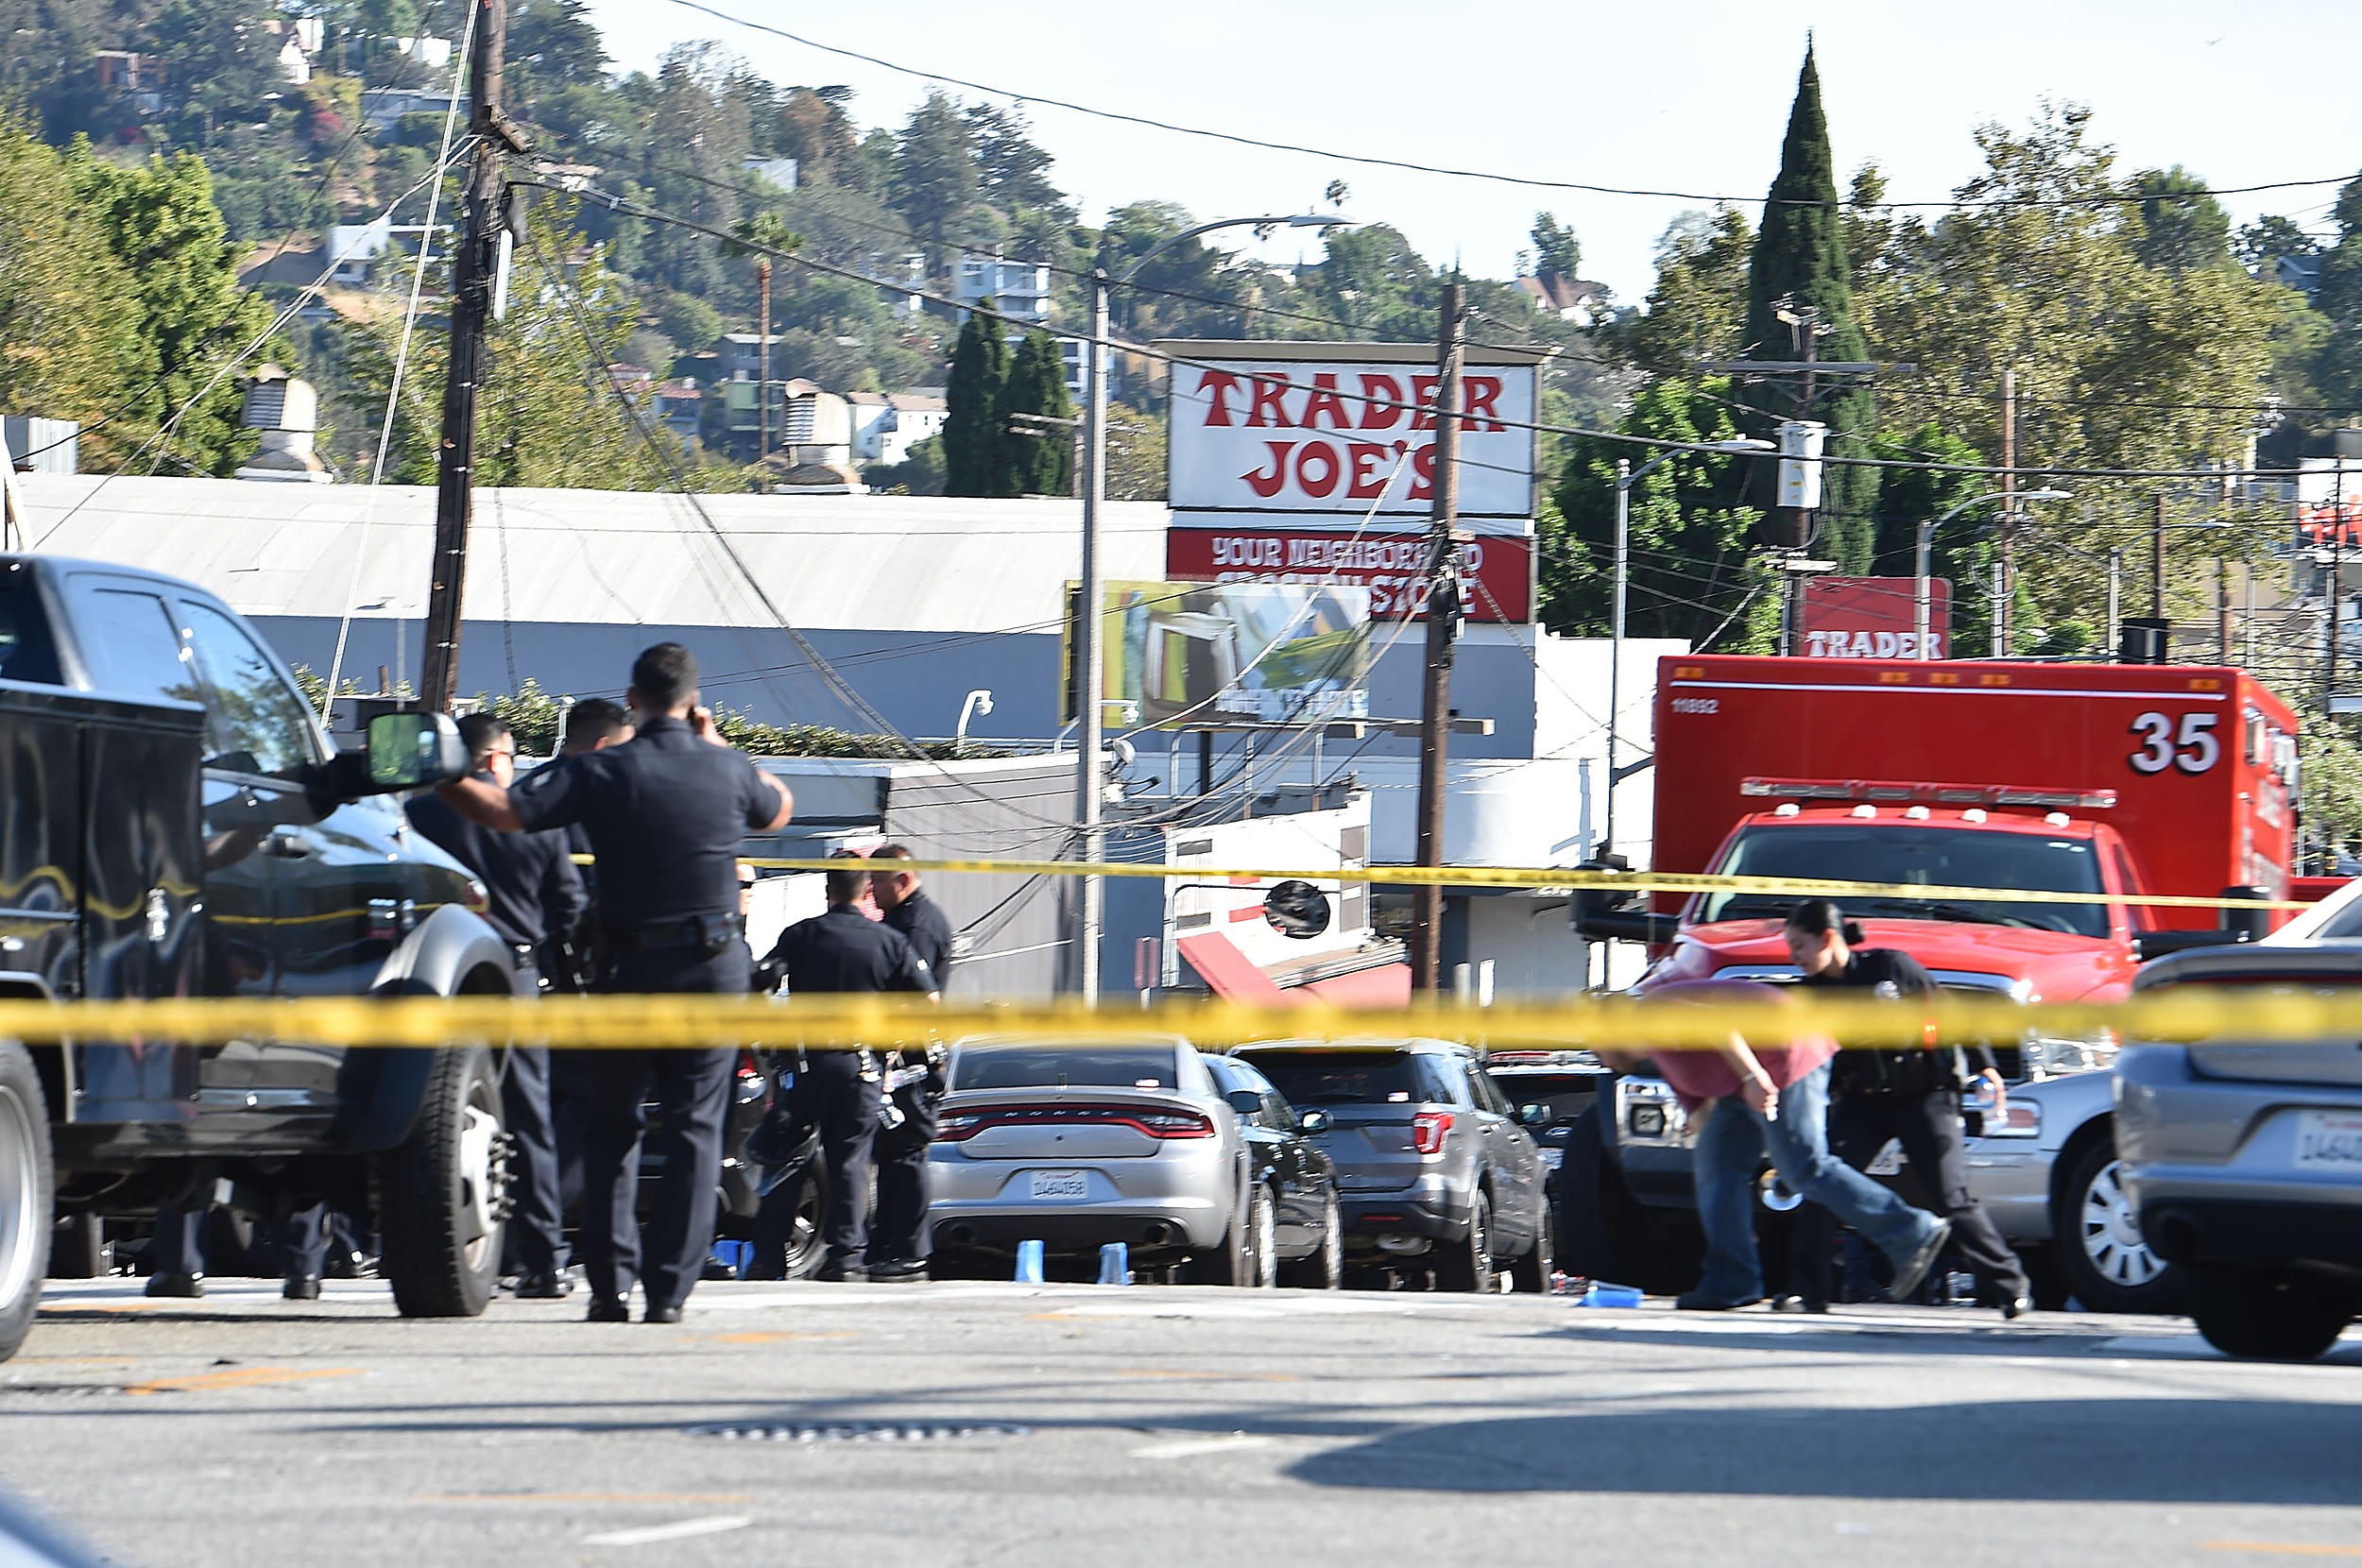 Suspect Held On 2 Million Bail After Deadly Standoff At Los Angeles